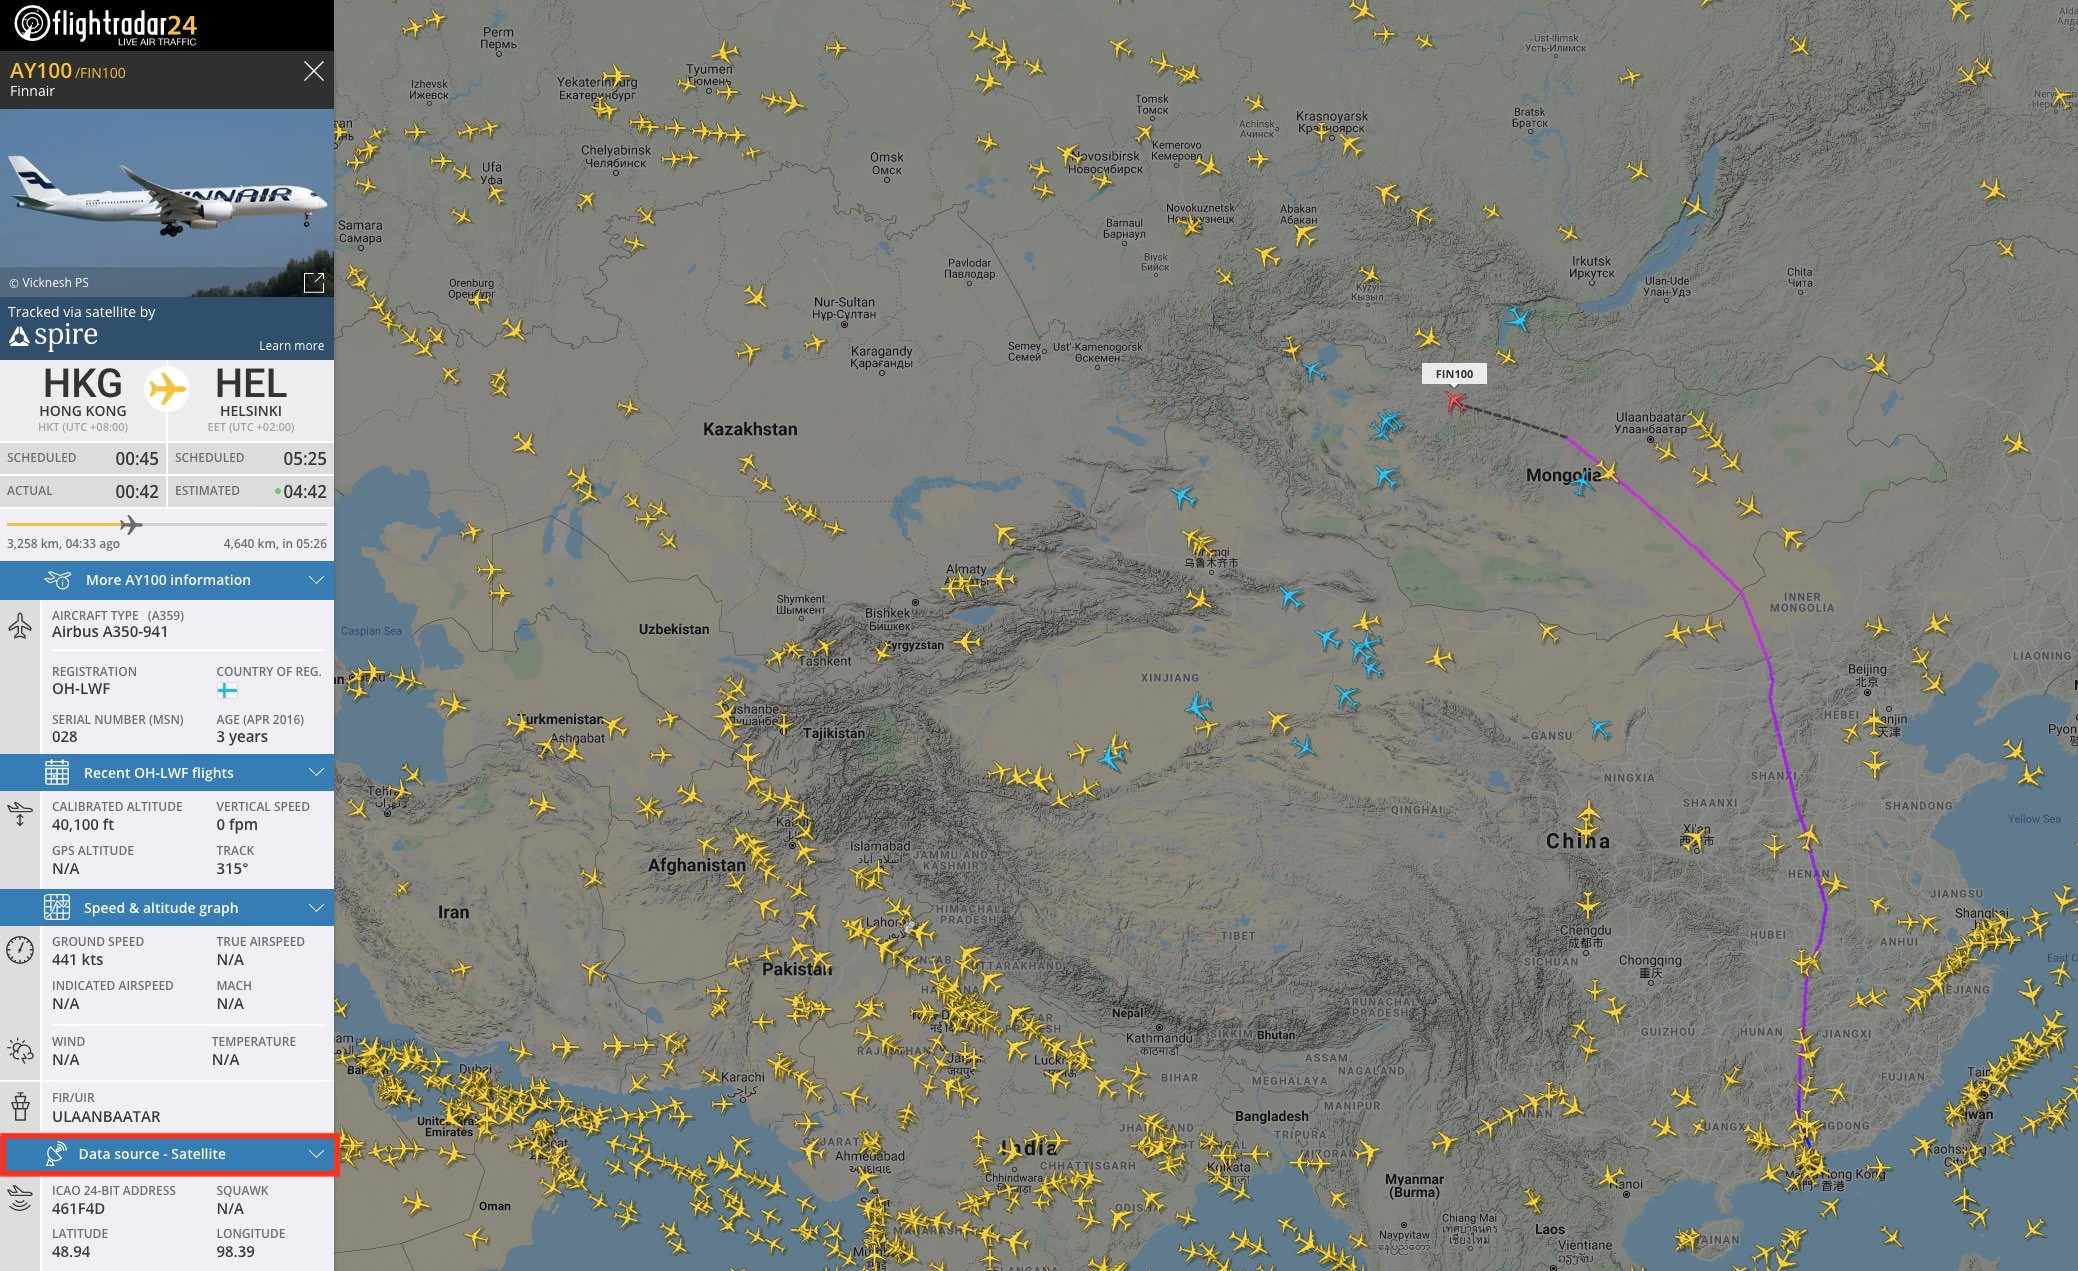 An example of a flight tracked by satellite